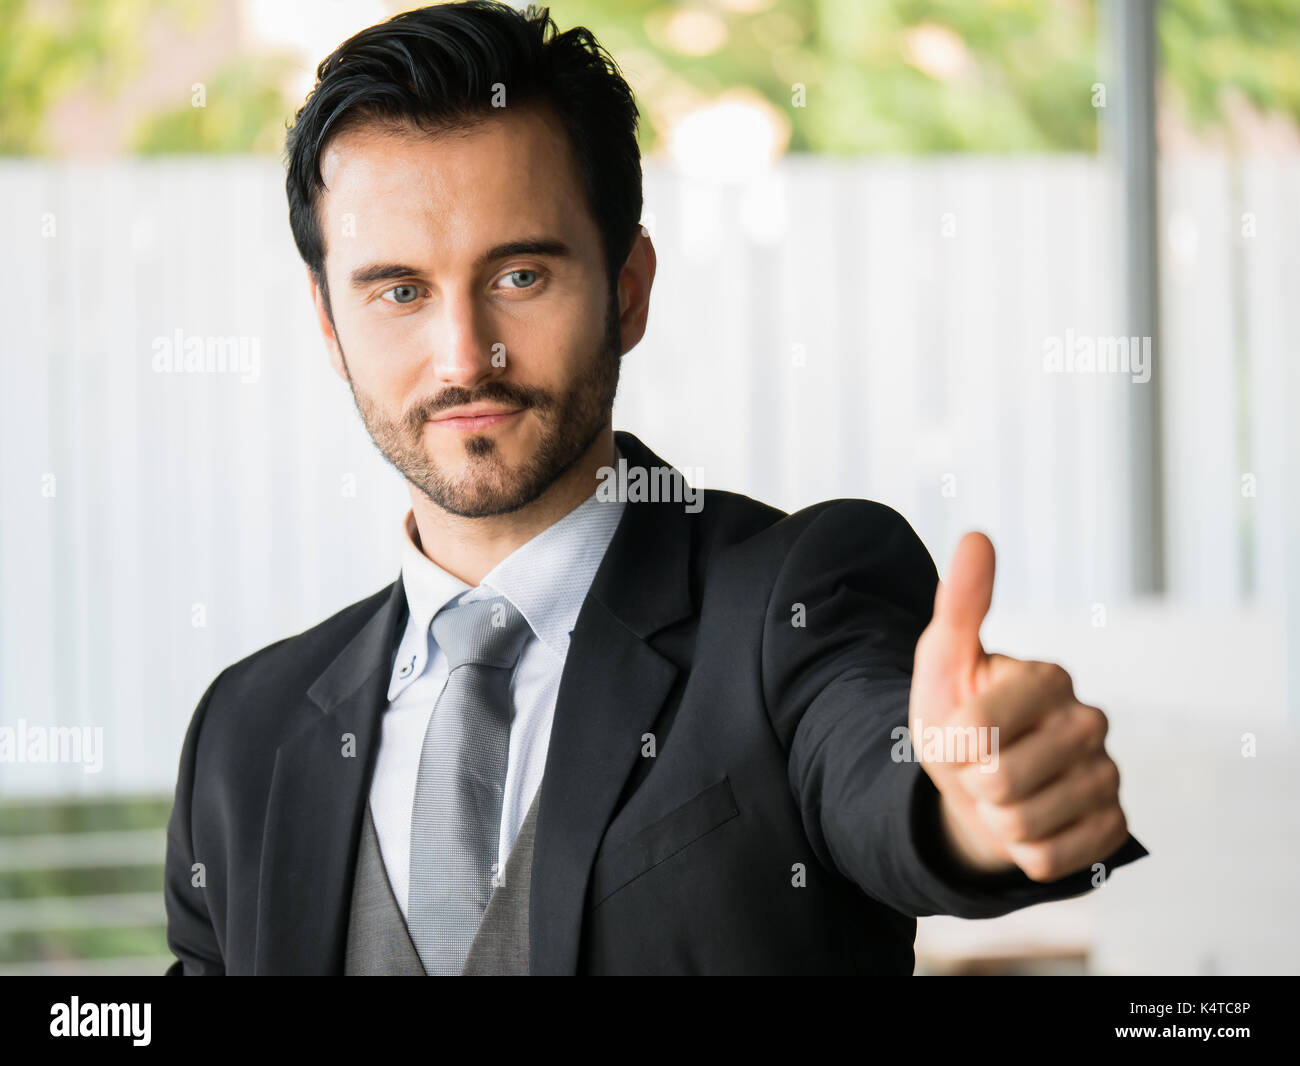 Successful businessman showing thumb up,office worker,business decisions - Stock Image